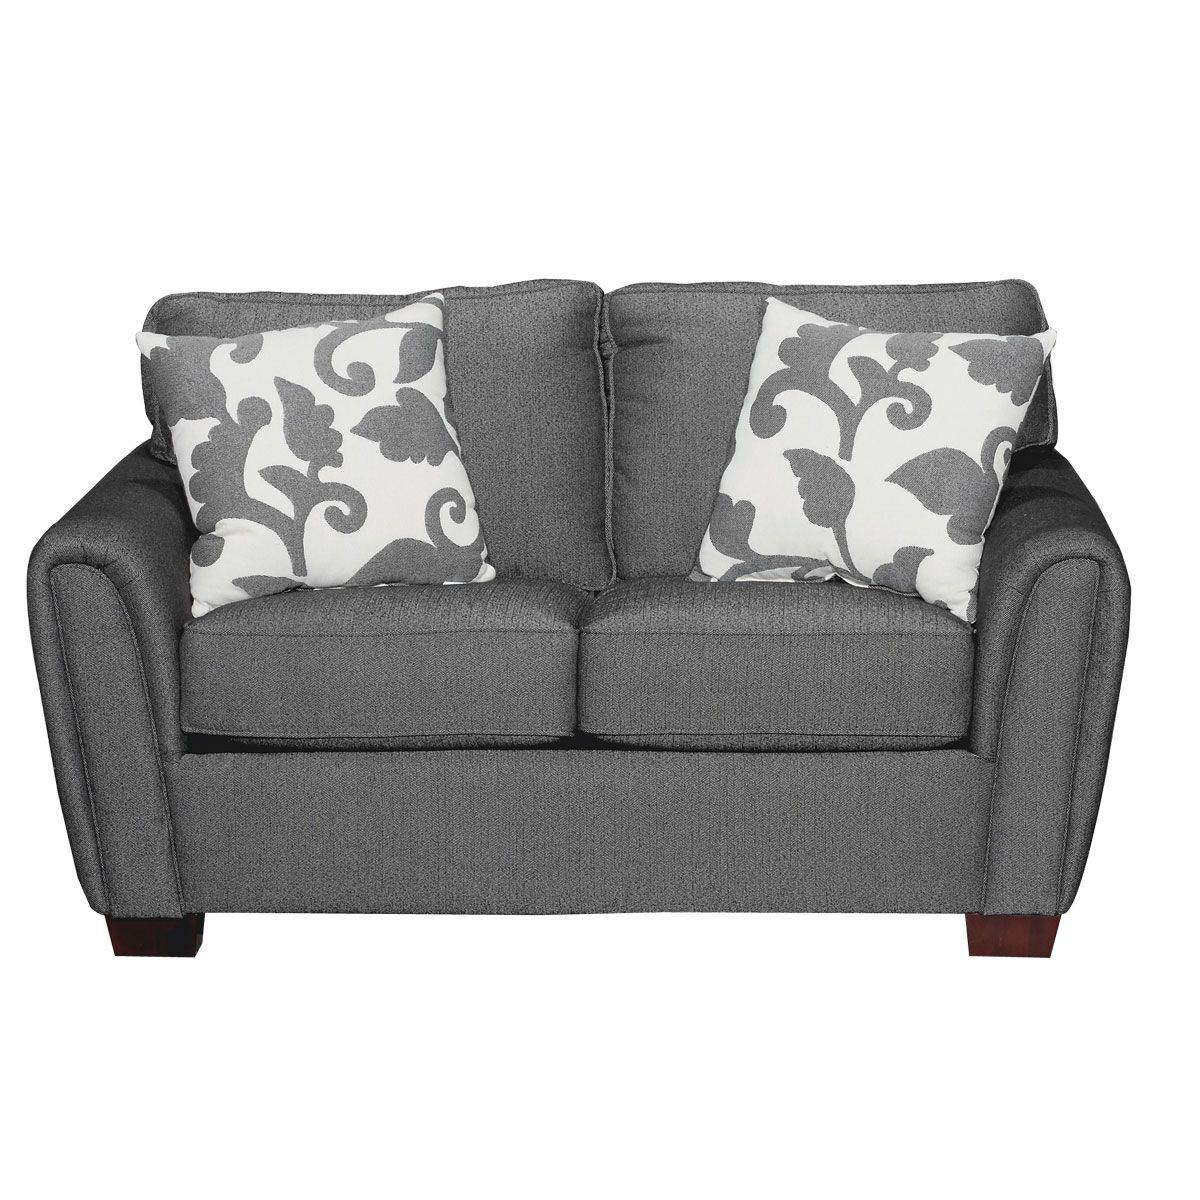 64 Onyx Upholstered Loveseat Pimp My Crib Pinterest